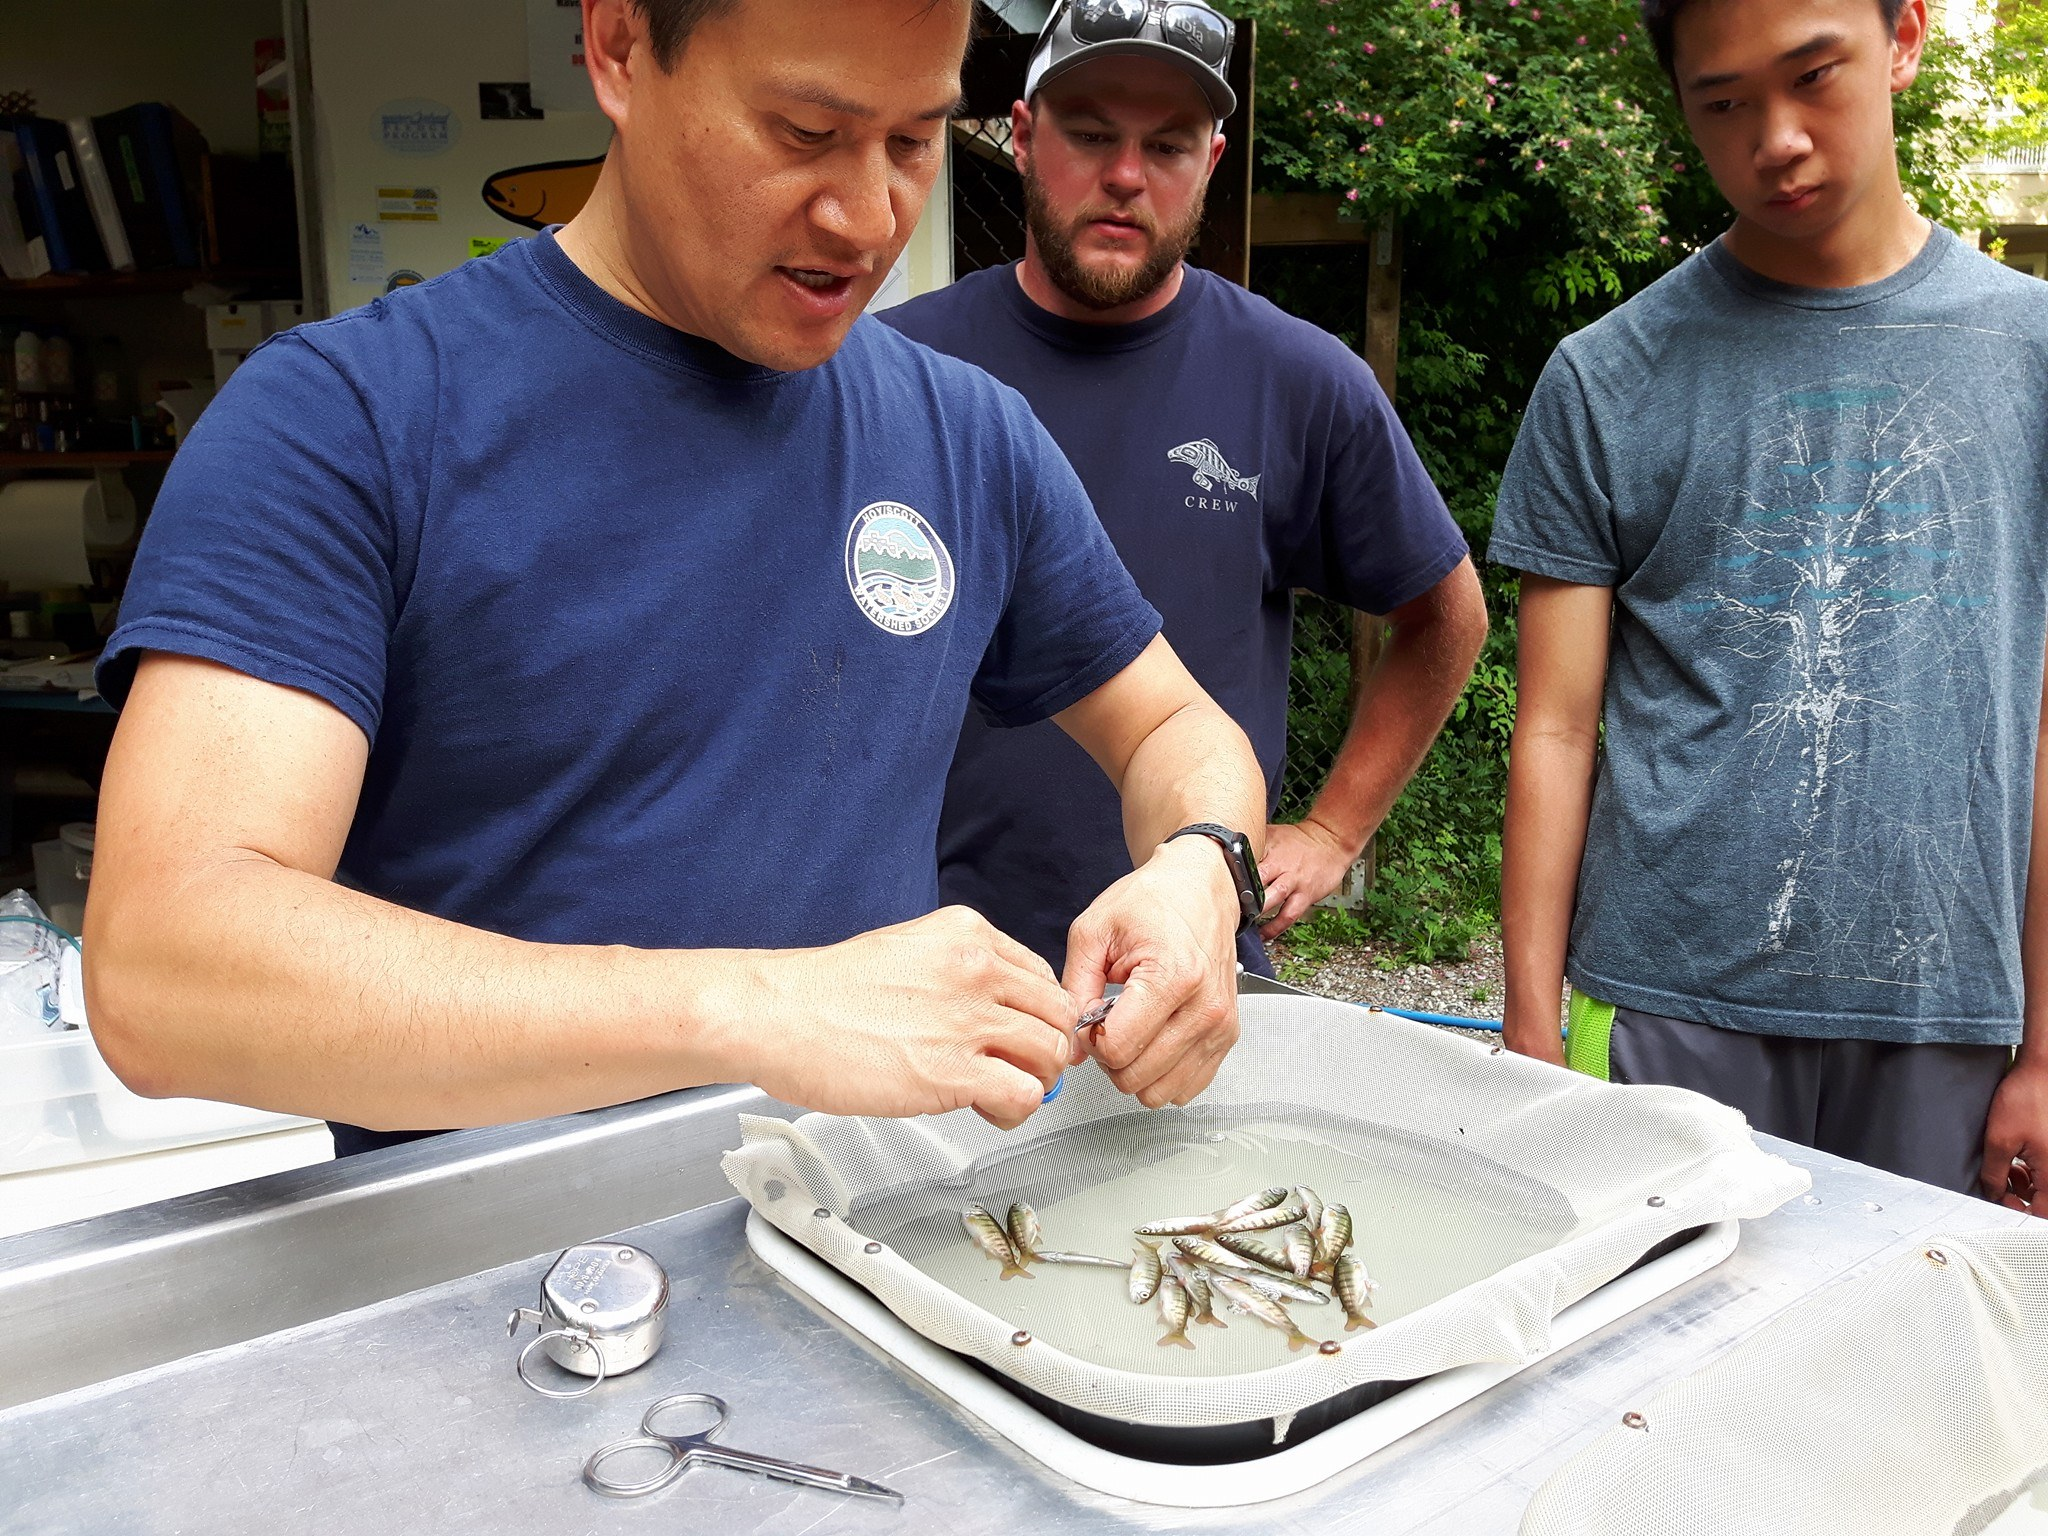 Hatchery manager Rodney Lee demos the adipose fin-clipping procedure as Tyler Thibault of the DFO looks on (center).